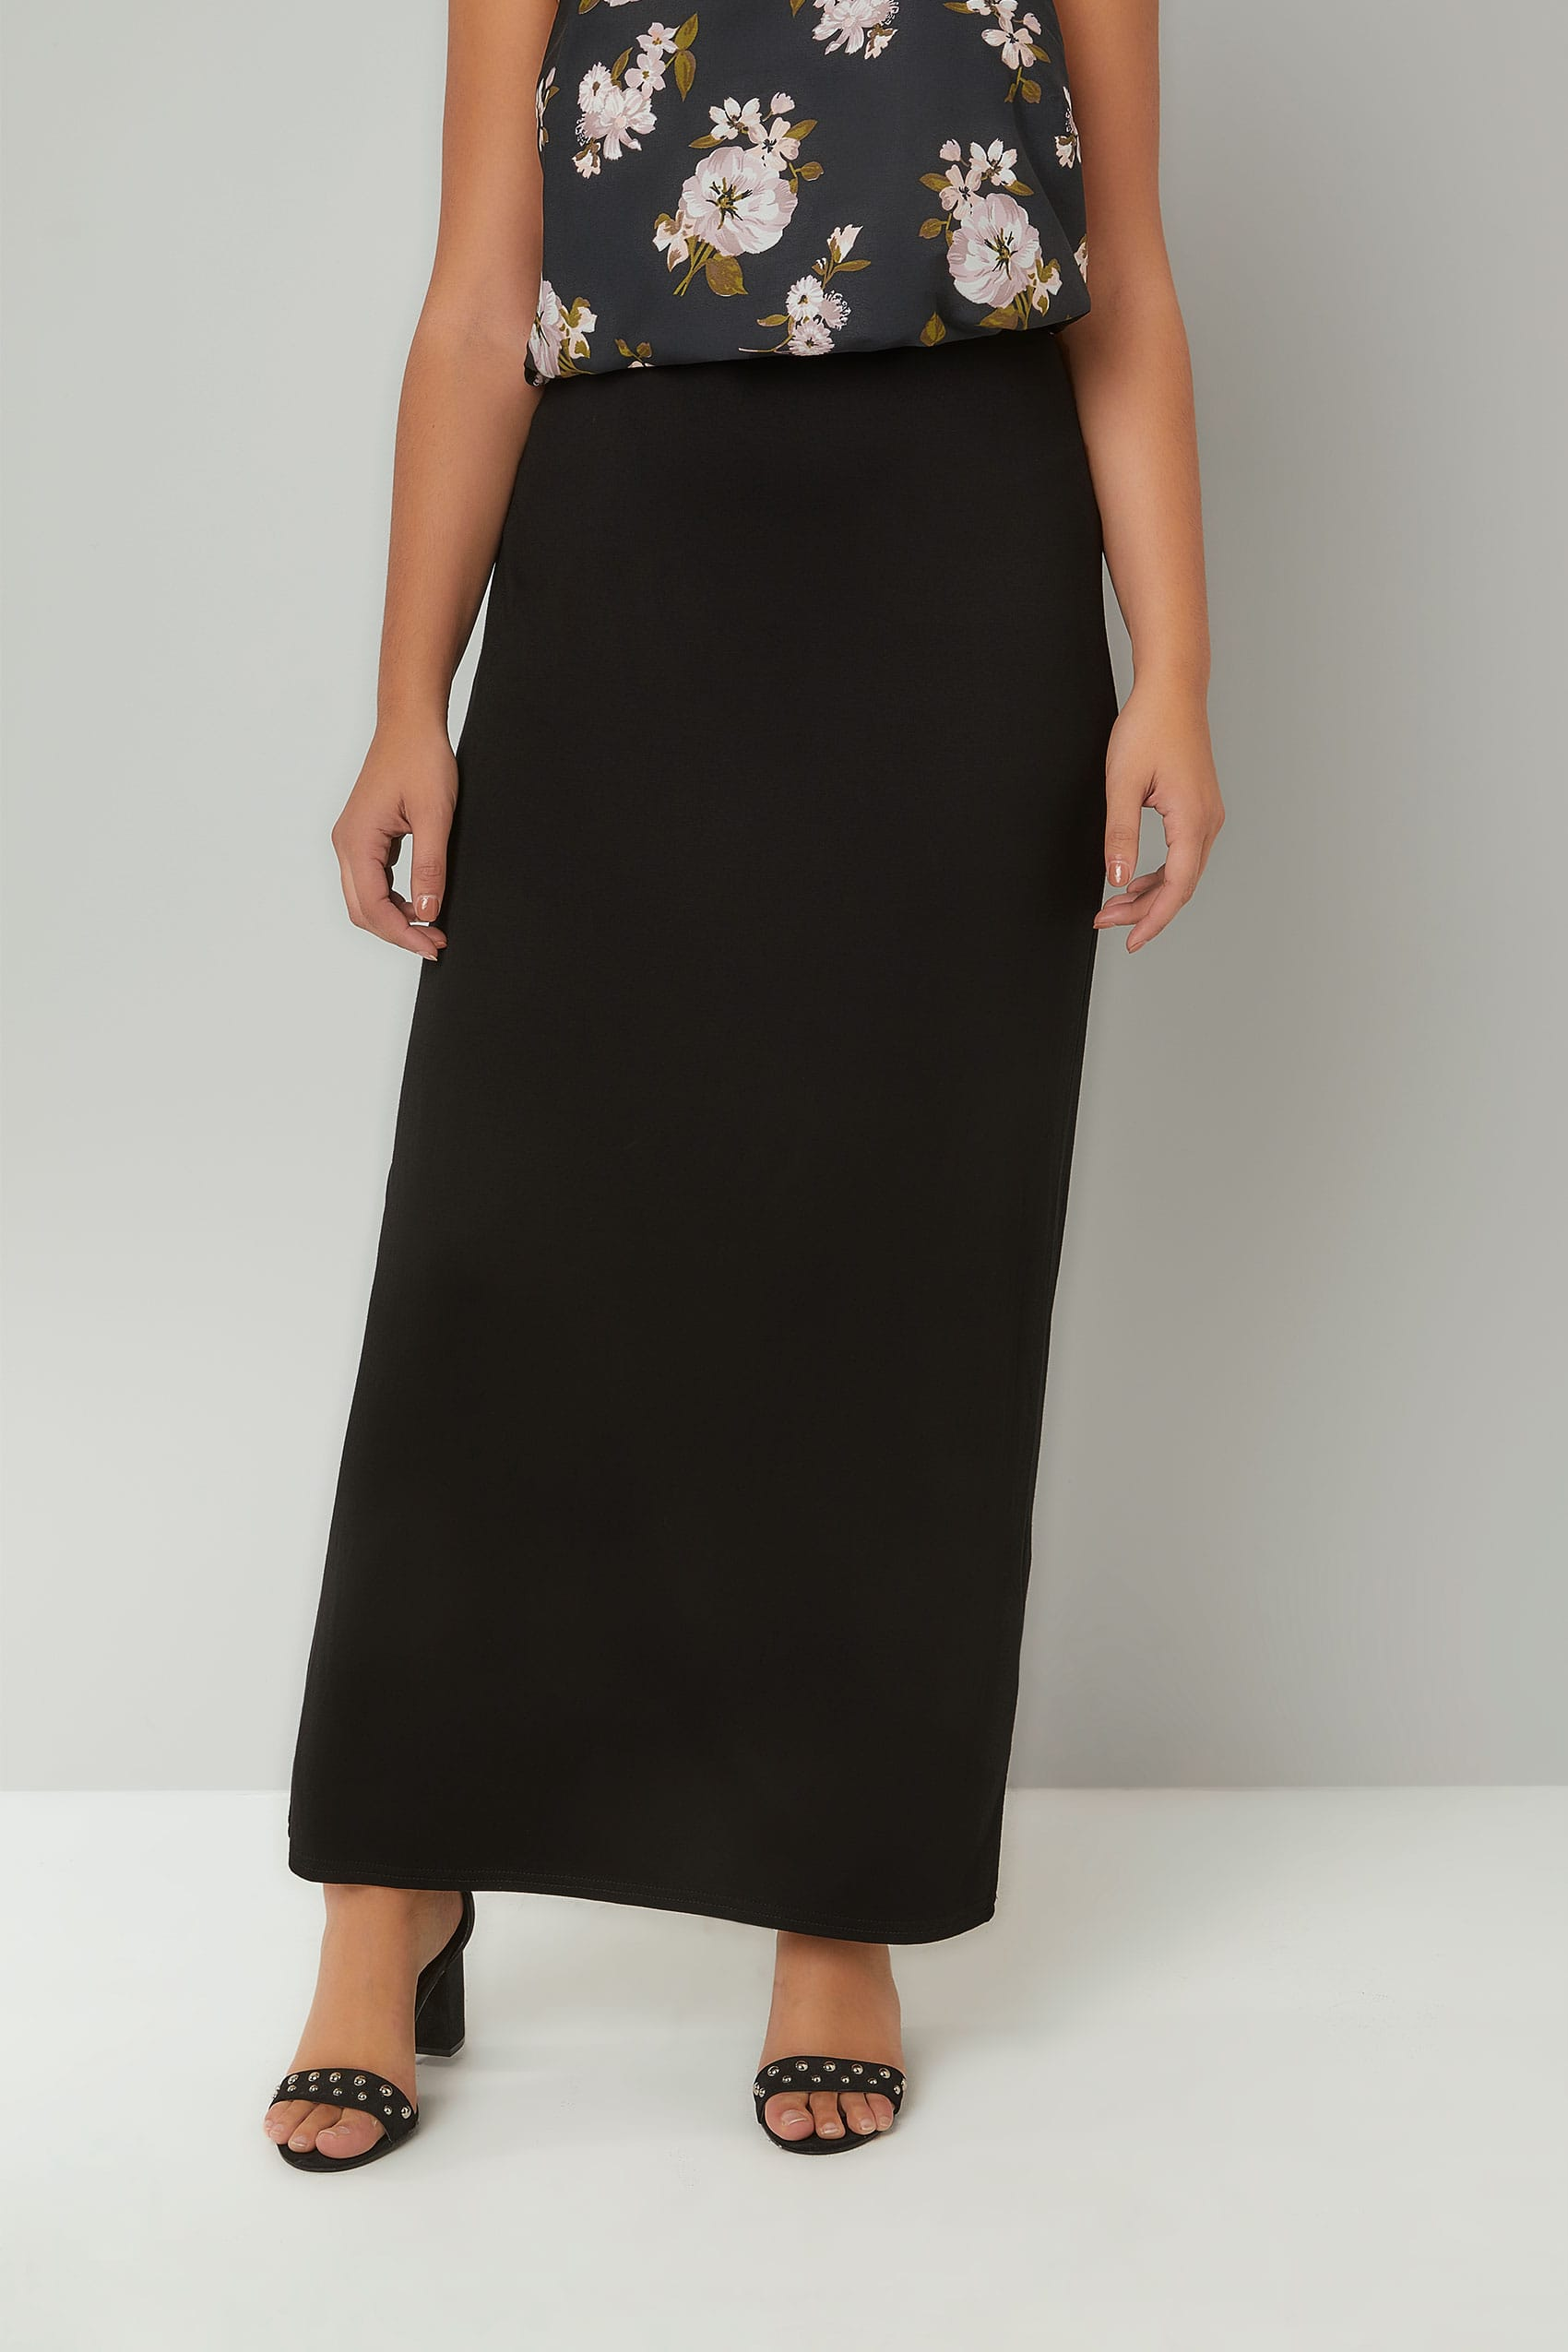 72738834ab6 Plus Size Skirts | Maxi, Midi & Mini Skirts | Yours Clothing